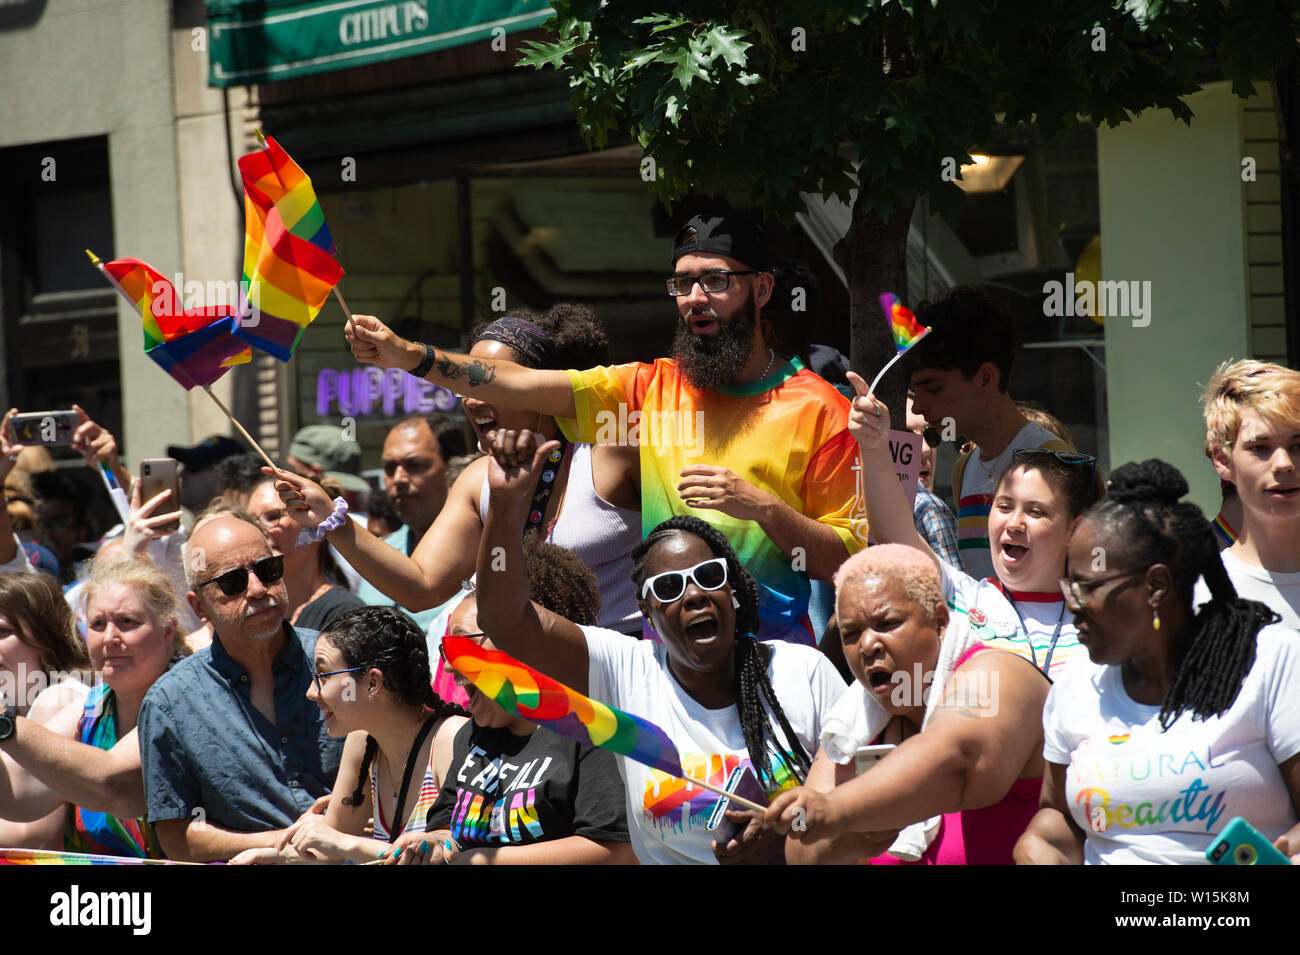 New York, NY, USA. 30th June, 2019. Onlookers pack the sidewalks during the 2019 NYC-World Pride March on June 30, 2019 in New York. Credit: Bryan Smith/ZUMA Wire/Alamy Live News - Stock Image